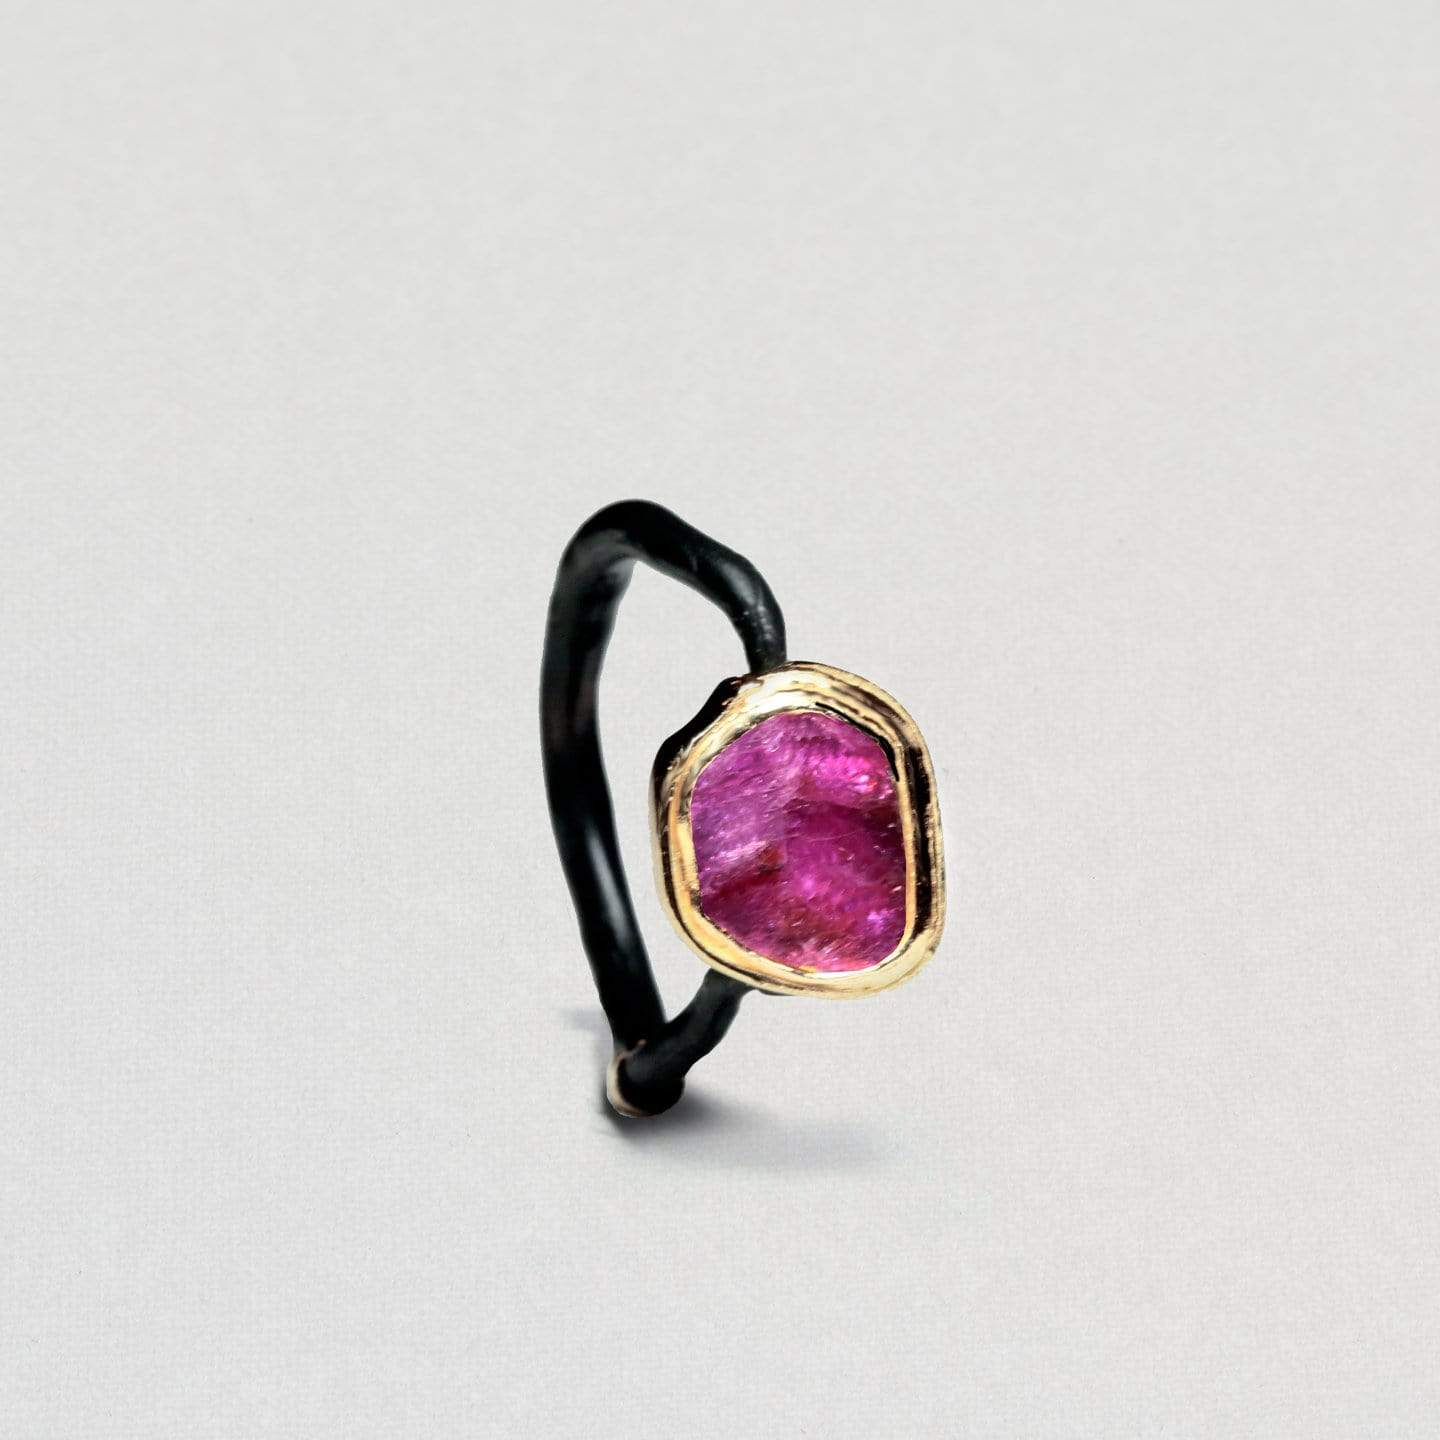 Lamia Ruby Ring, Anthracite, black, Gold, Handmade, Ruby, spo-disabled, StoneColor:PinkRuby, Style:Delicate, Type:BlackAnthracite, Type:StoneCandyDelicate Ring